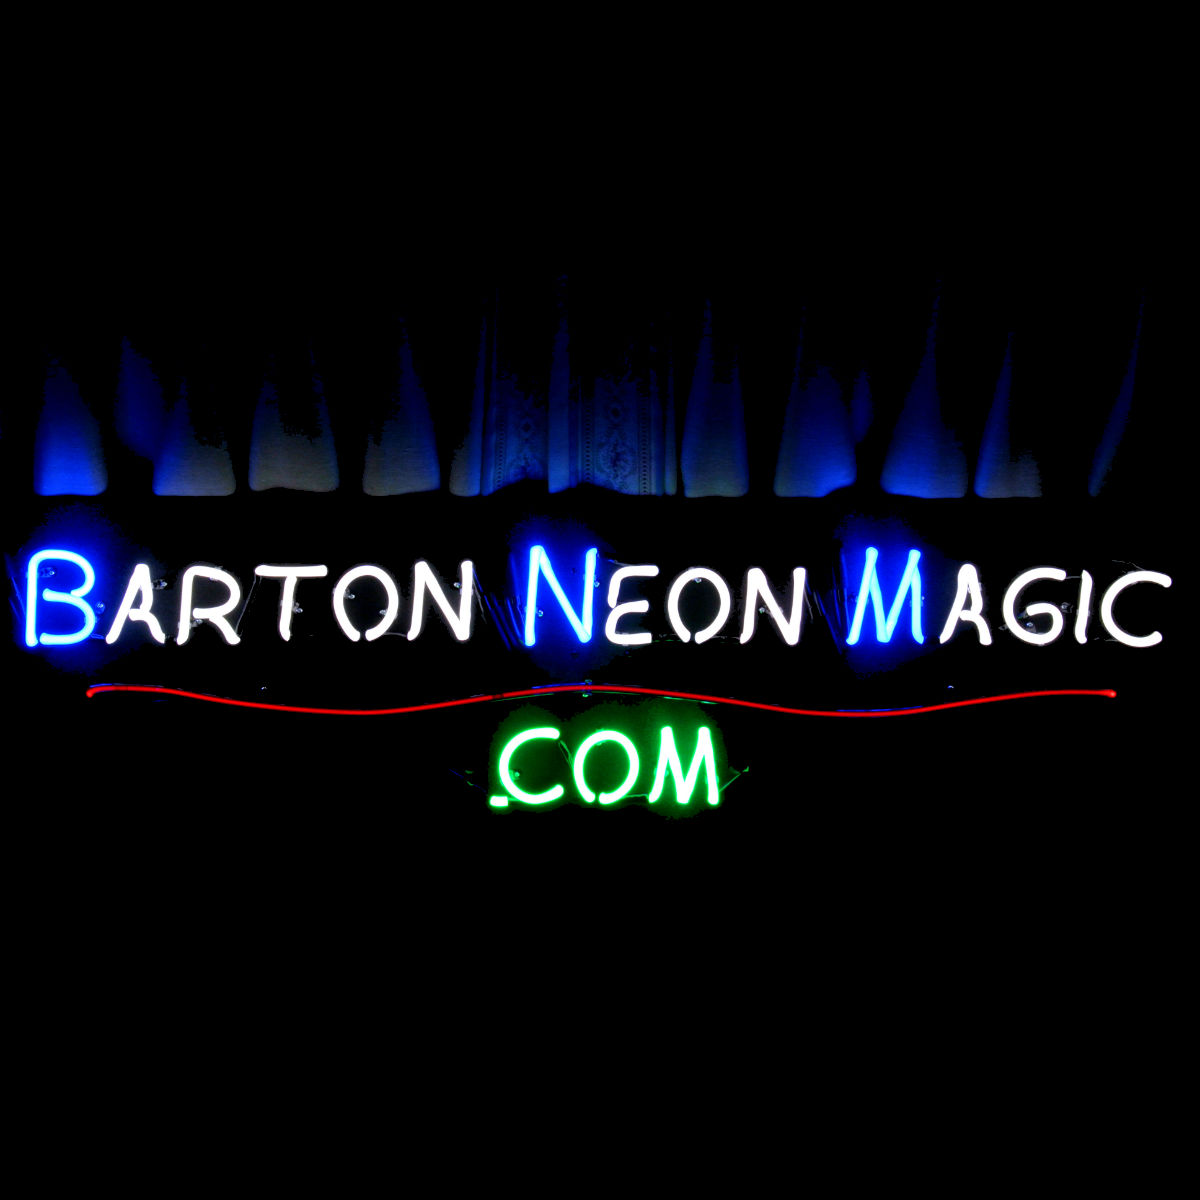 Custom Aviation Neon Light Artworks by John Barton - BartonNeonMagic.com